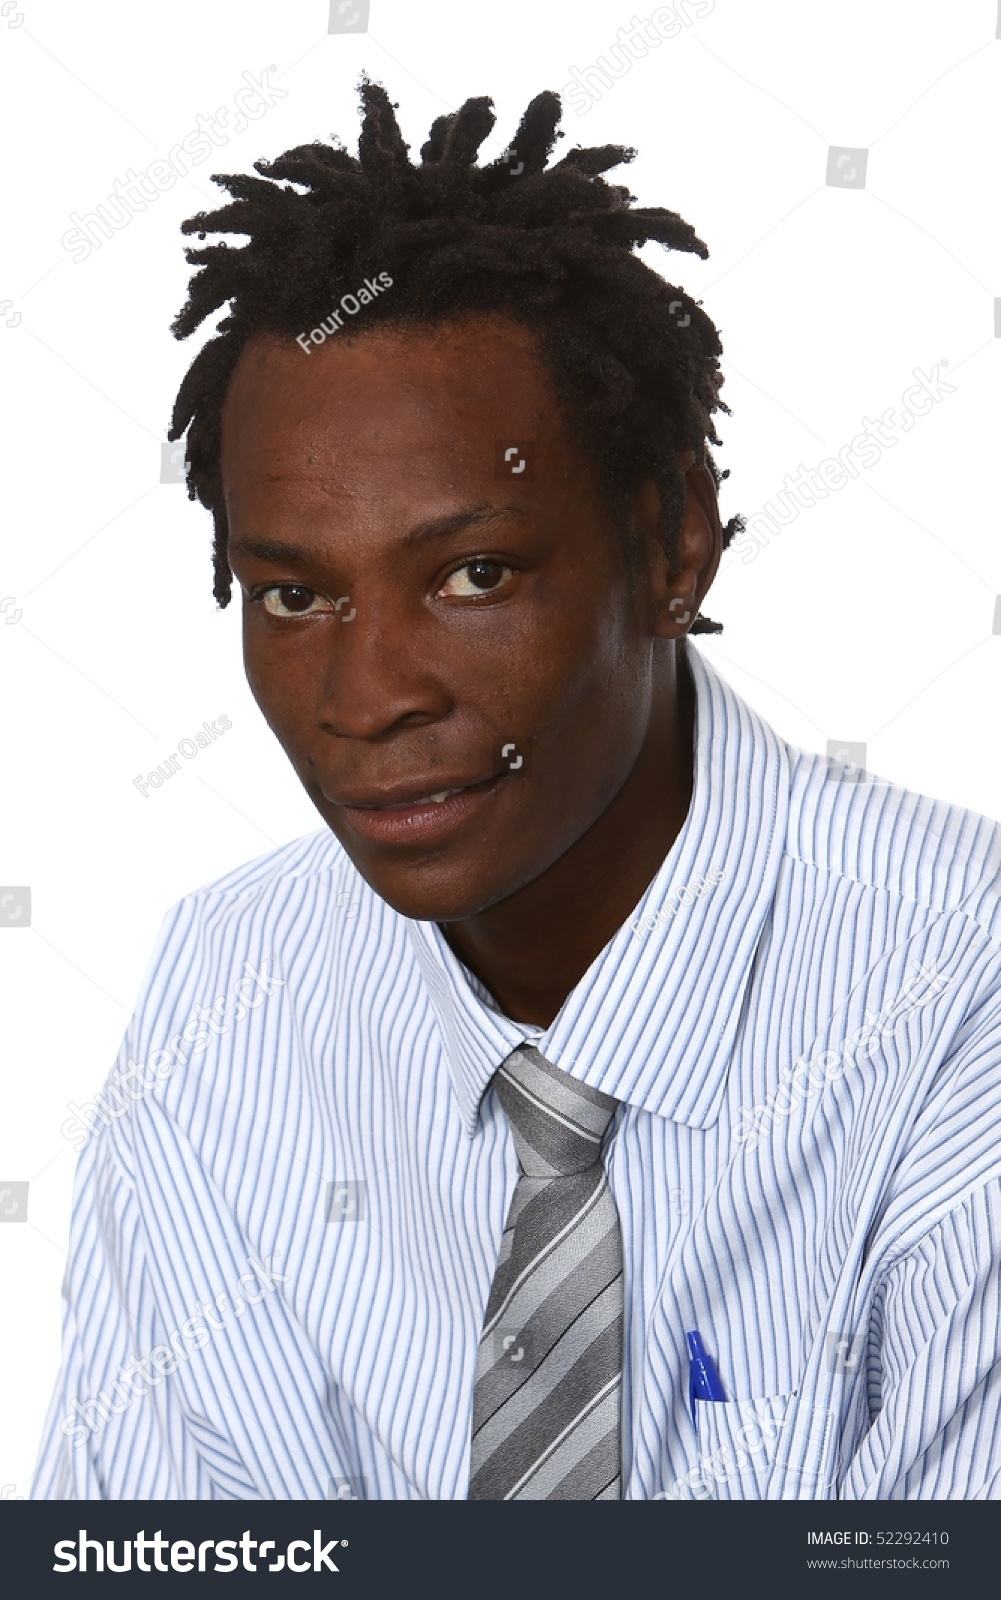 Young Black Business Man Dreadlocks Hairstyle Stock Photo ...